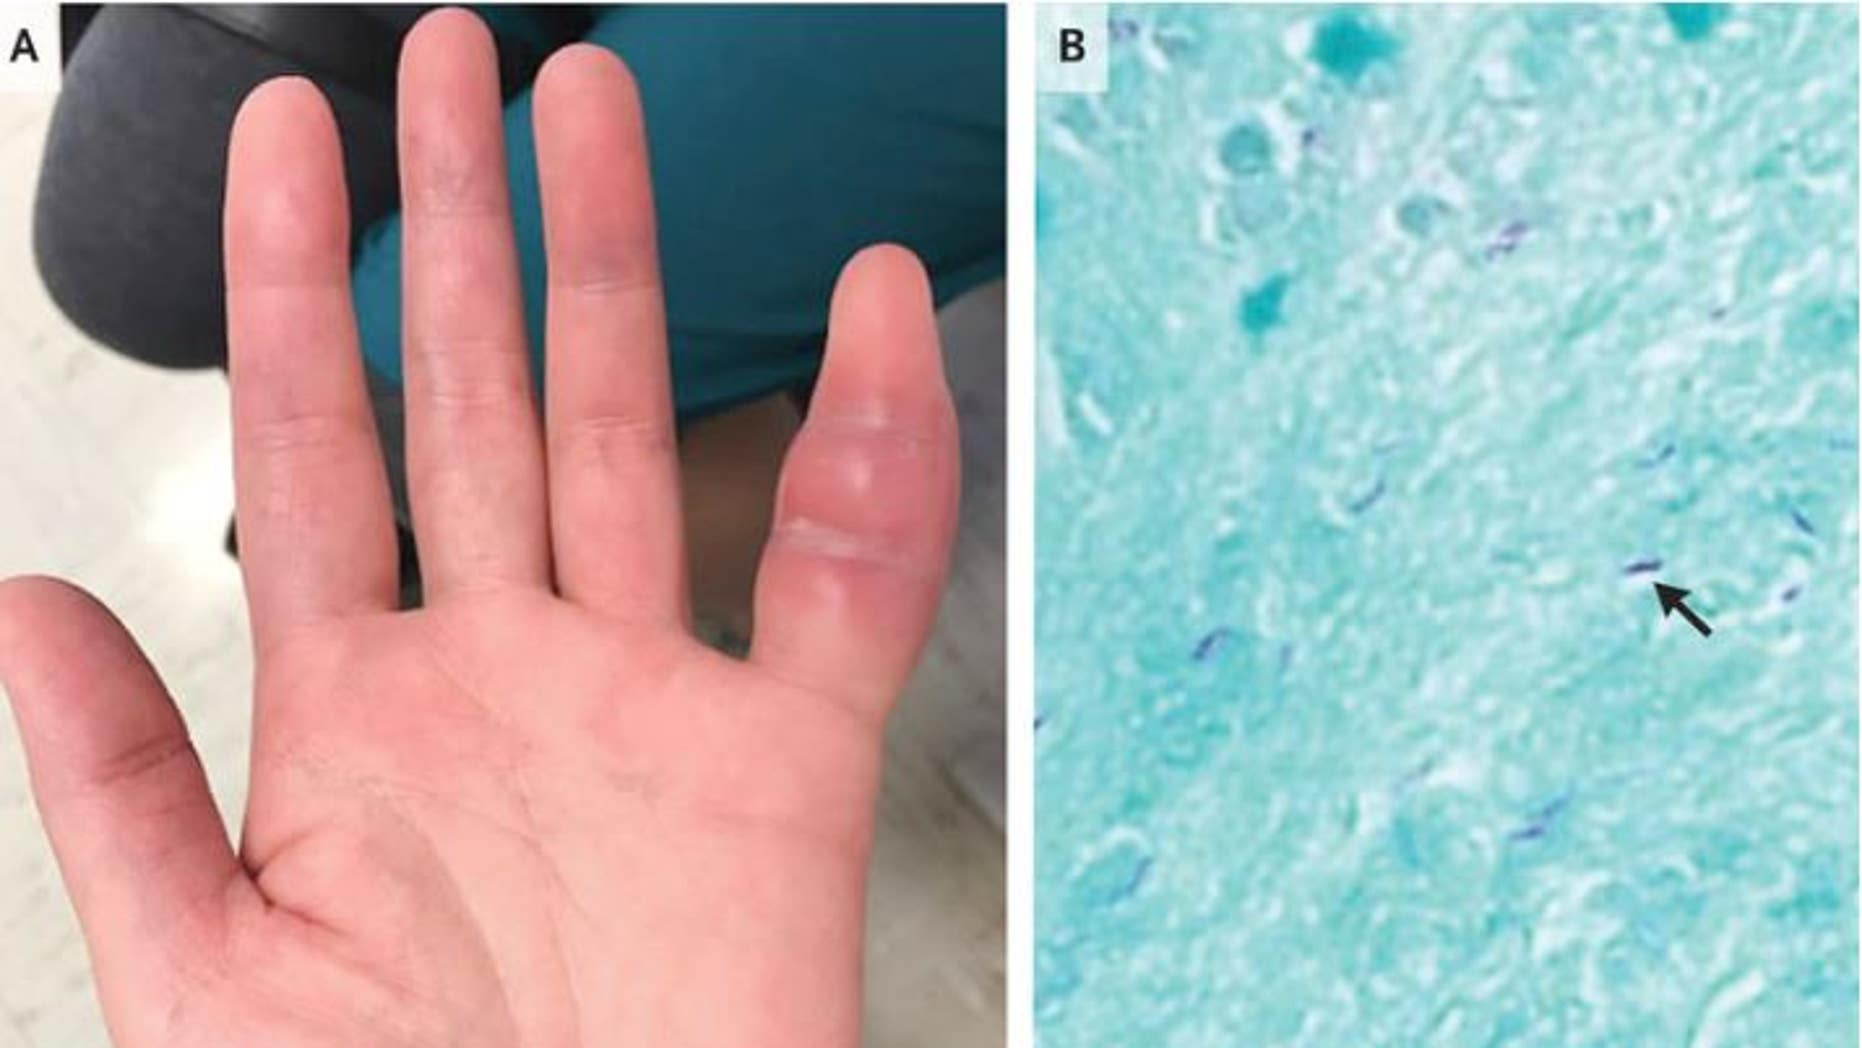 A woman's swollen finger was a rare sign of tuberculosis infection. Above, an image of the woman's finger (panel A), and a microscopic view of the infection (panel B). An arrow points to the tuberculosis bacteria.